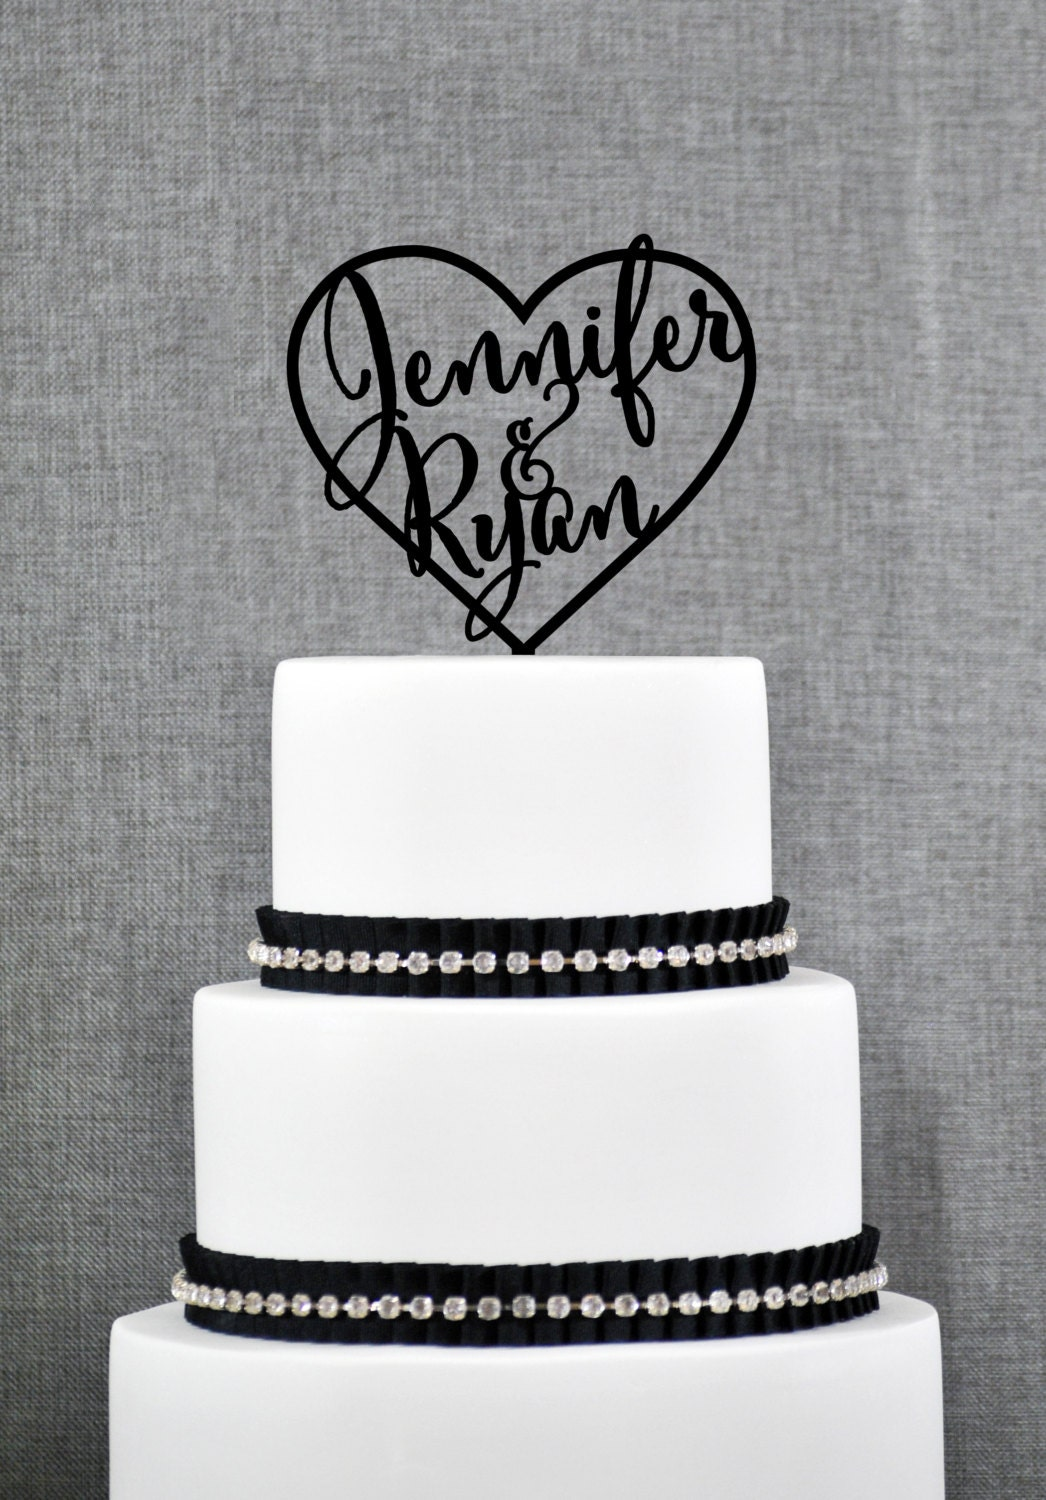 Custom Wedding Cake Topper First Names Inside Heart